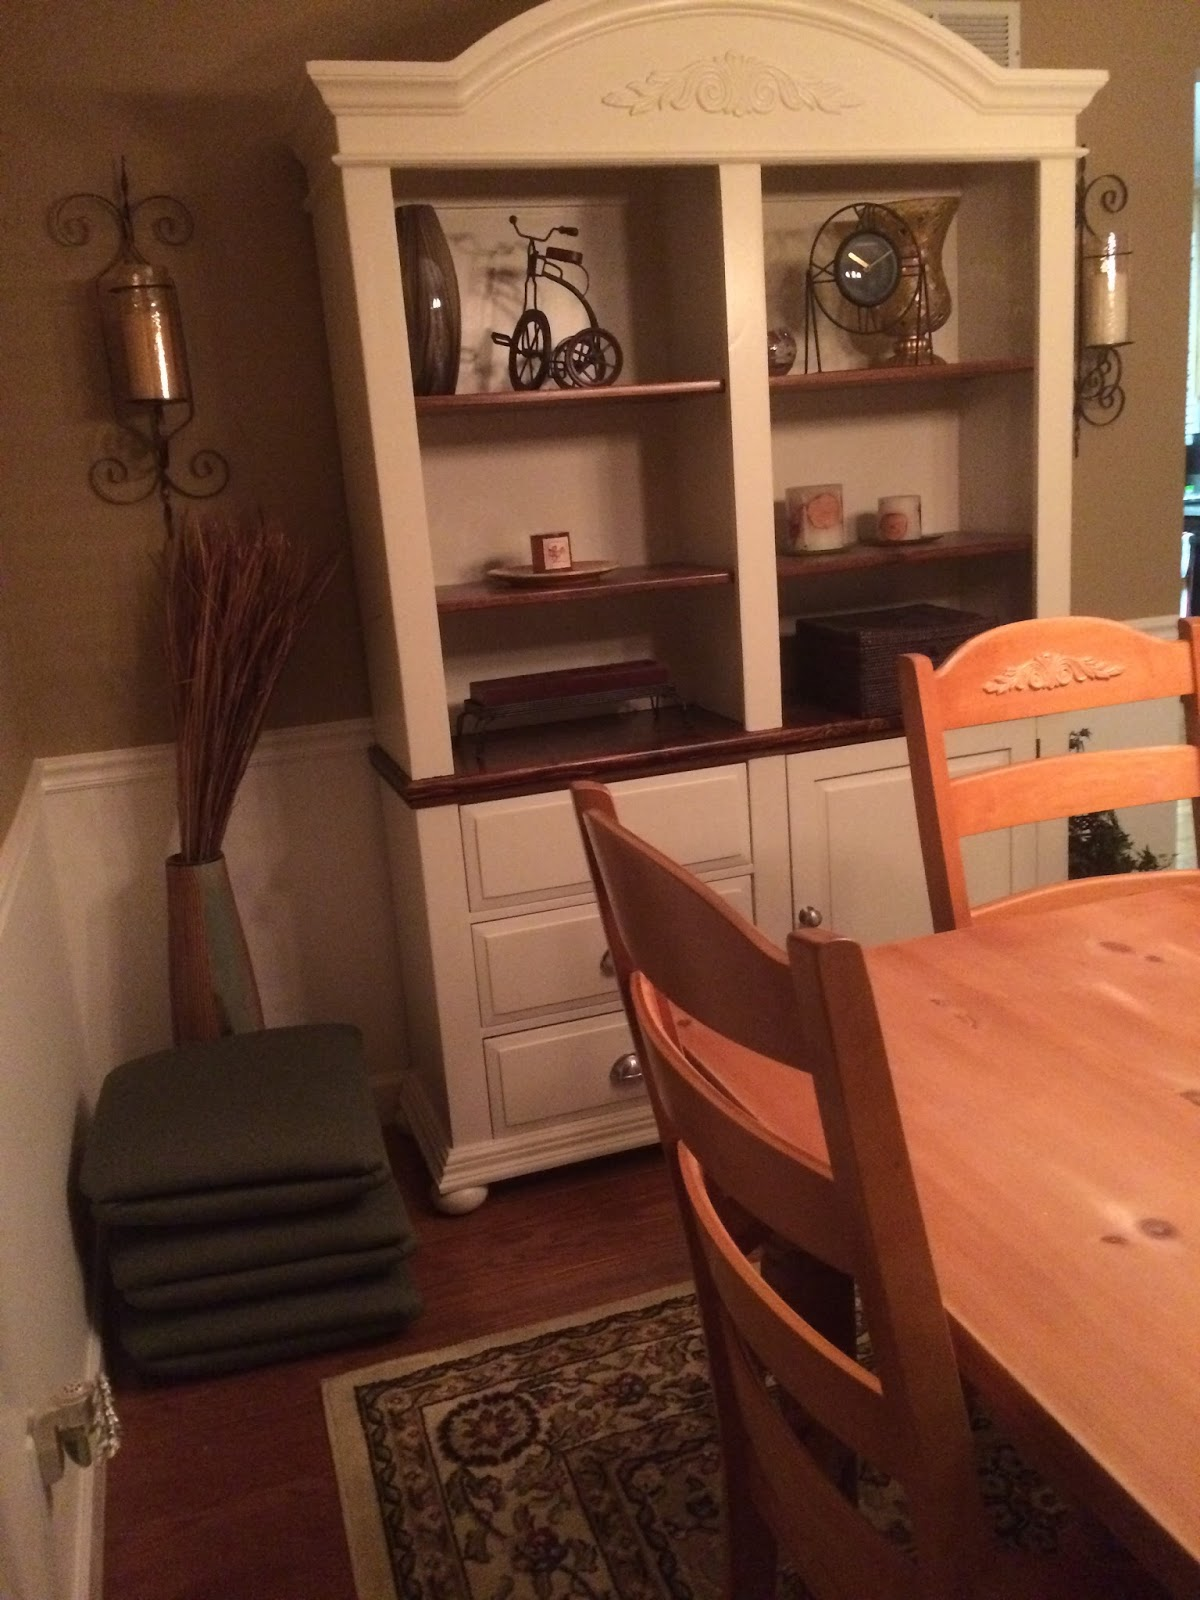 Nice Rustoleum Painter us Touch Heirloom White Broyhill Fontana Library with Dark Walnut Danish Oil shelves Soon the table will match the library